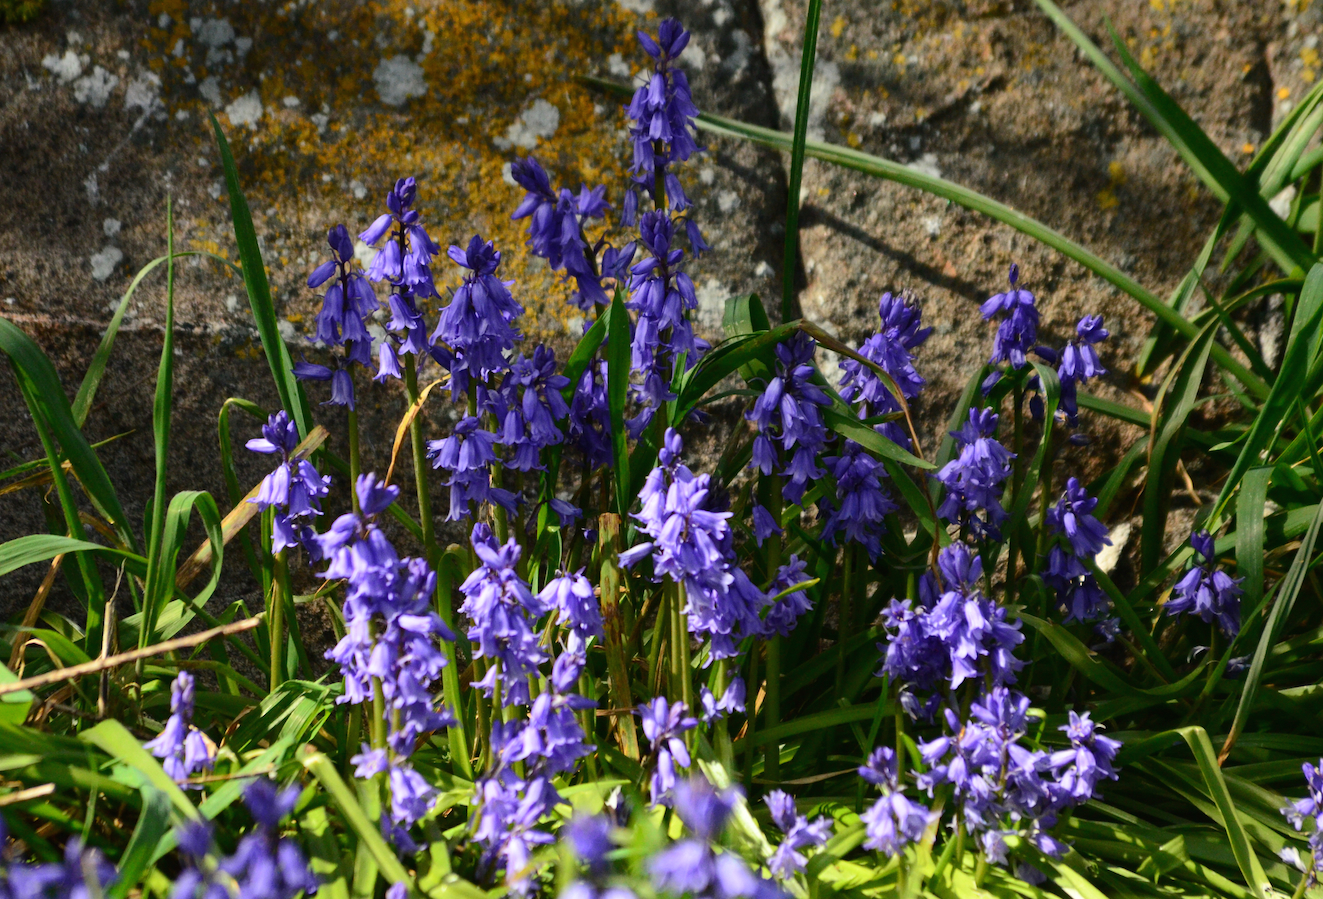 Bluebells by an old granite rockwall.